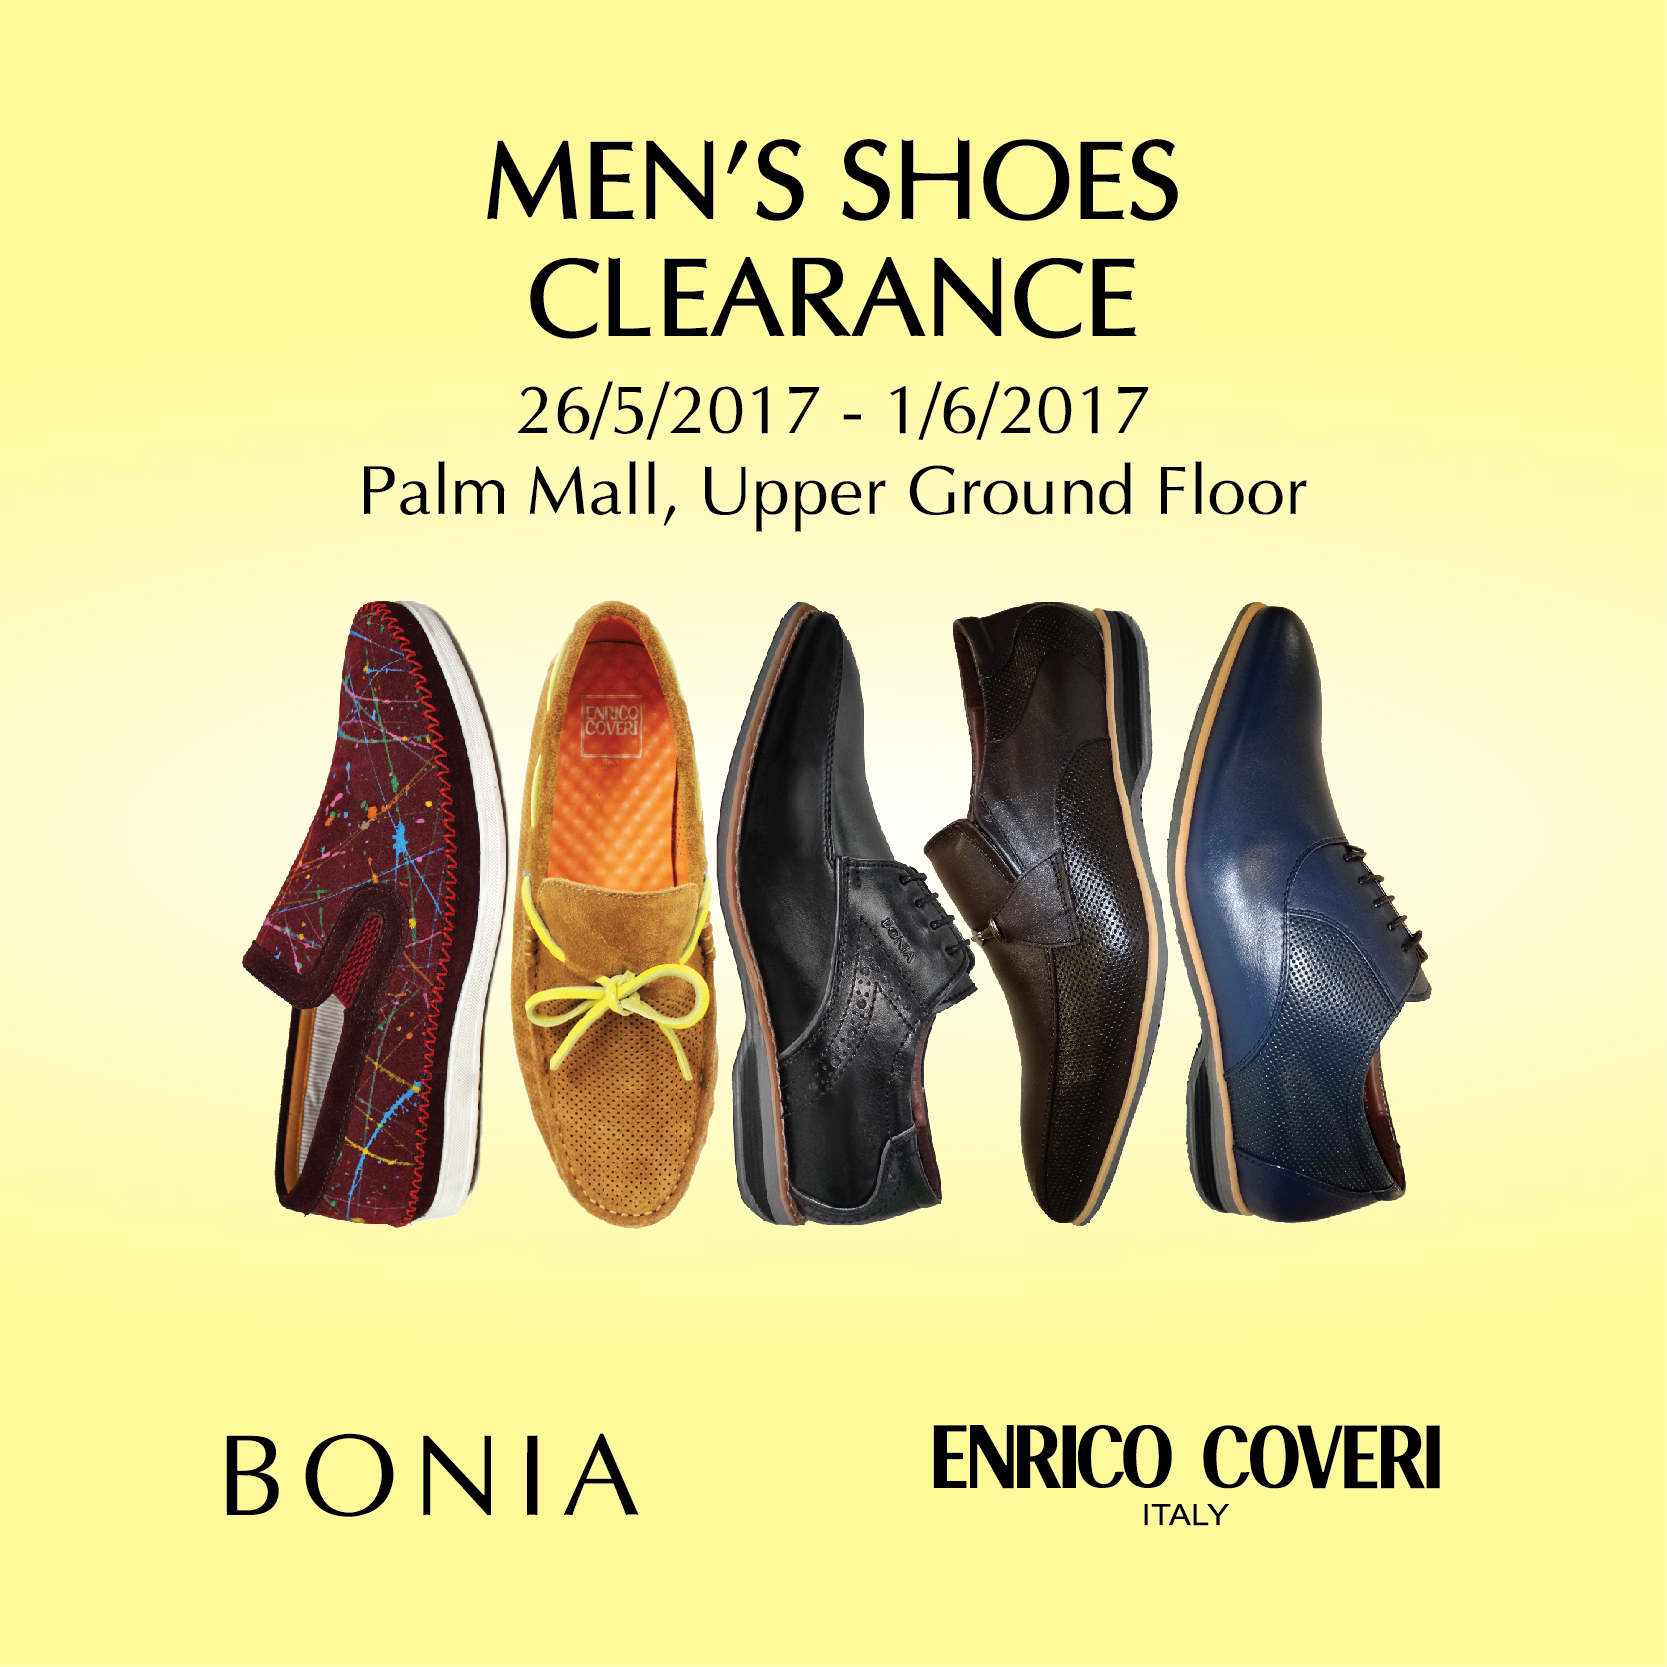 MEN'S SHOES CLEARANCE